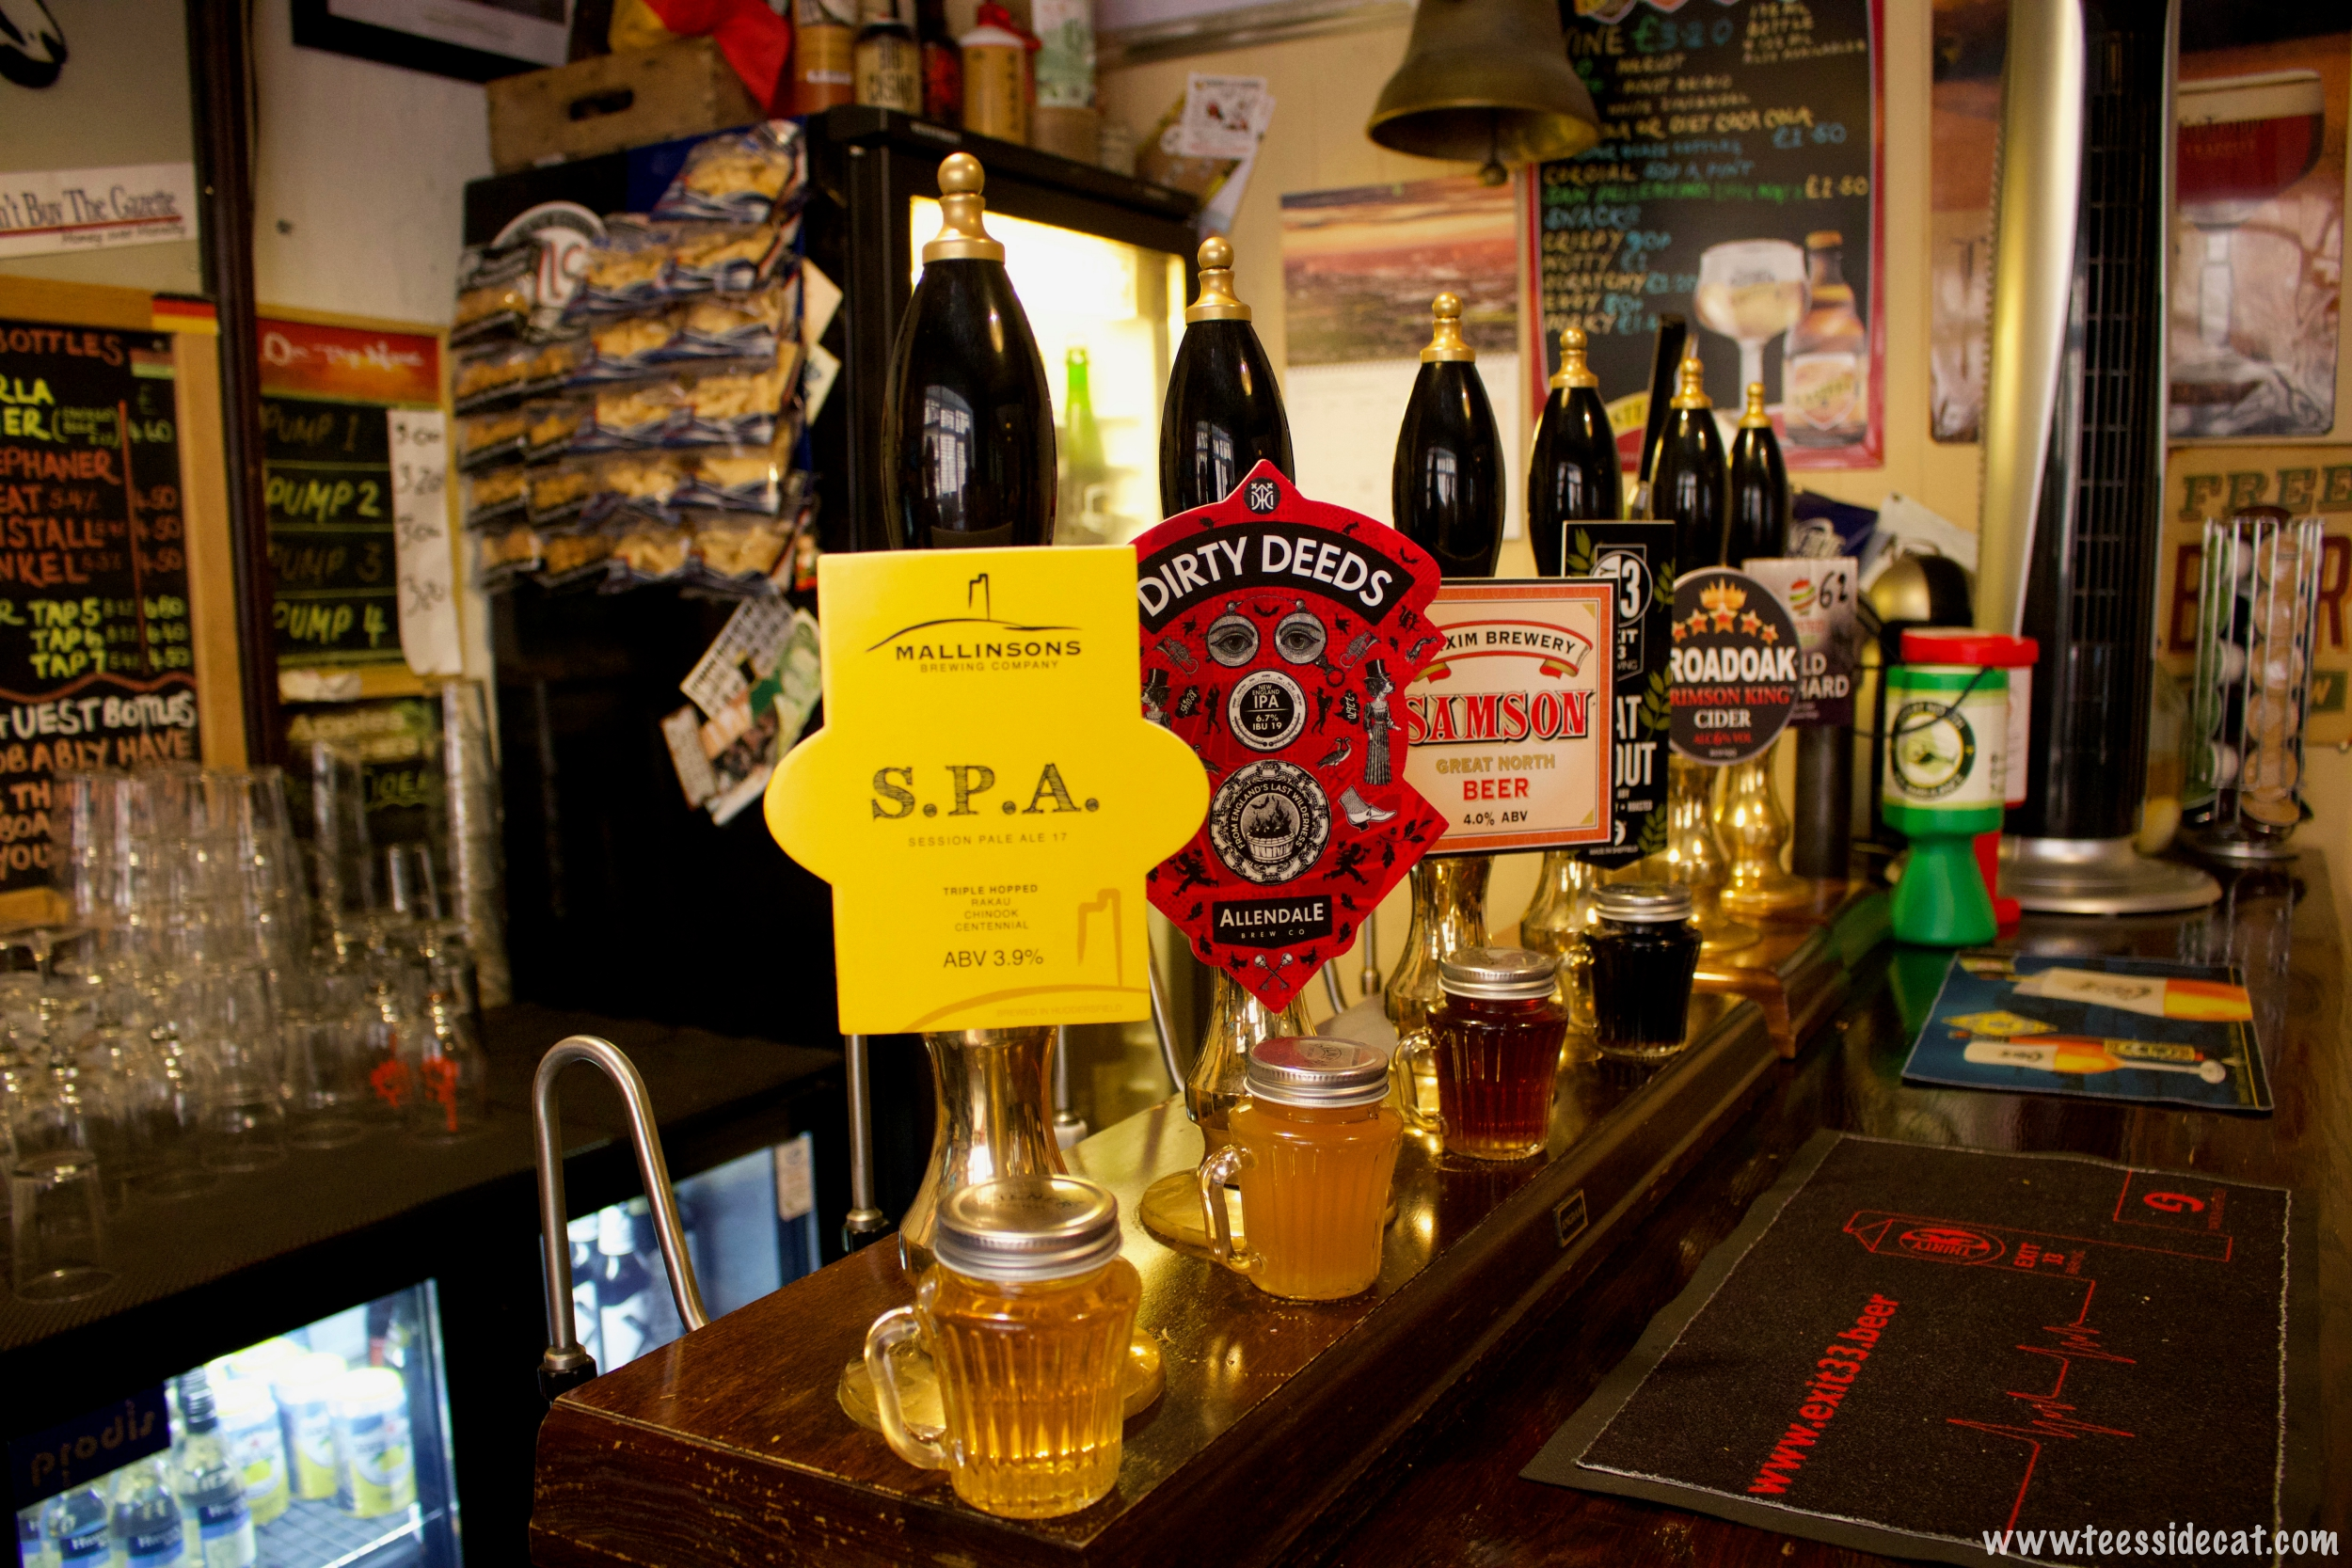 To find out which 'real ales' they're serving, check their Facebook page